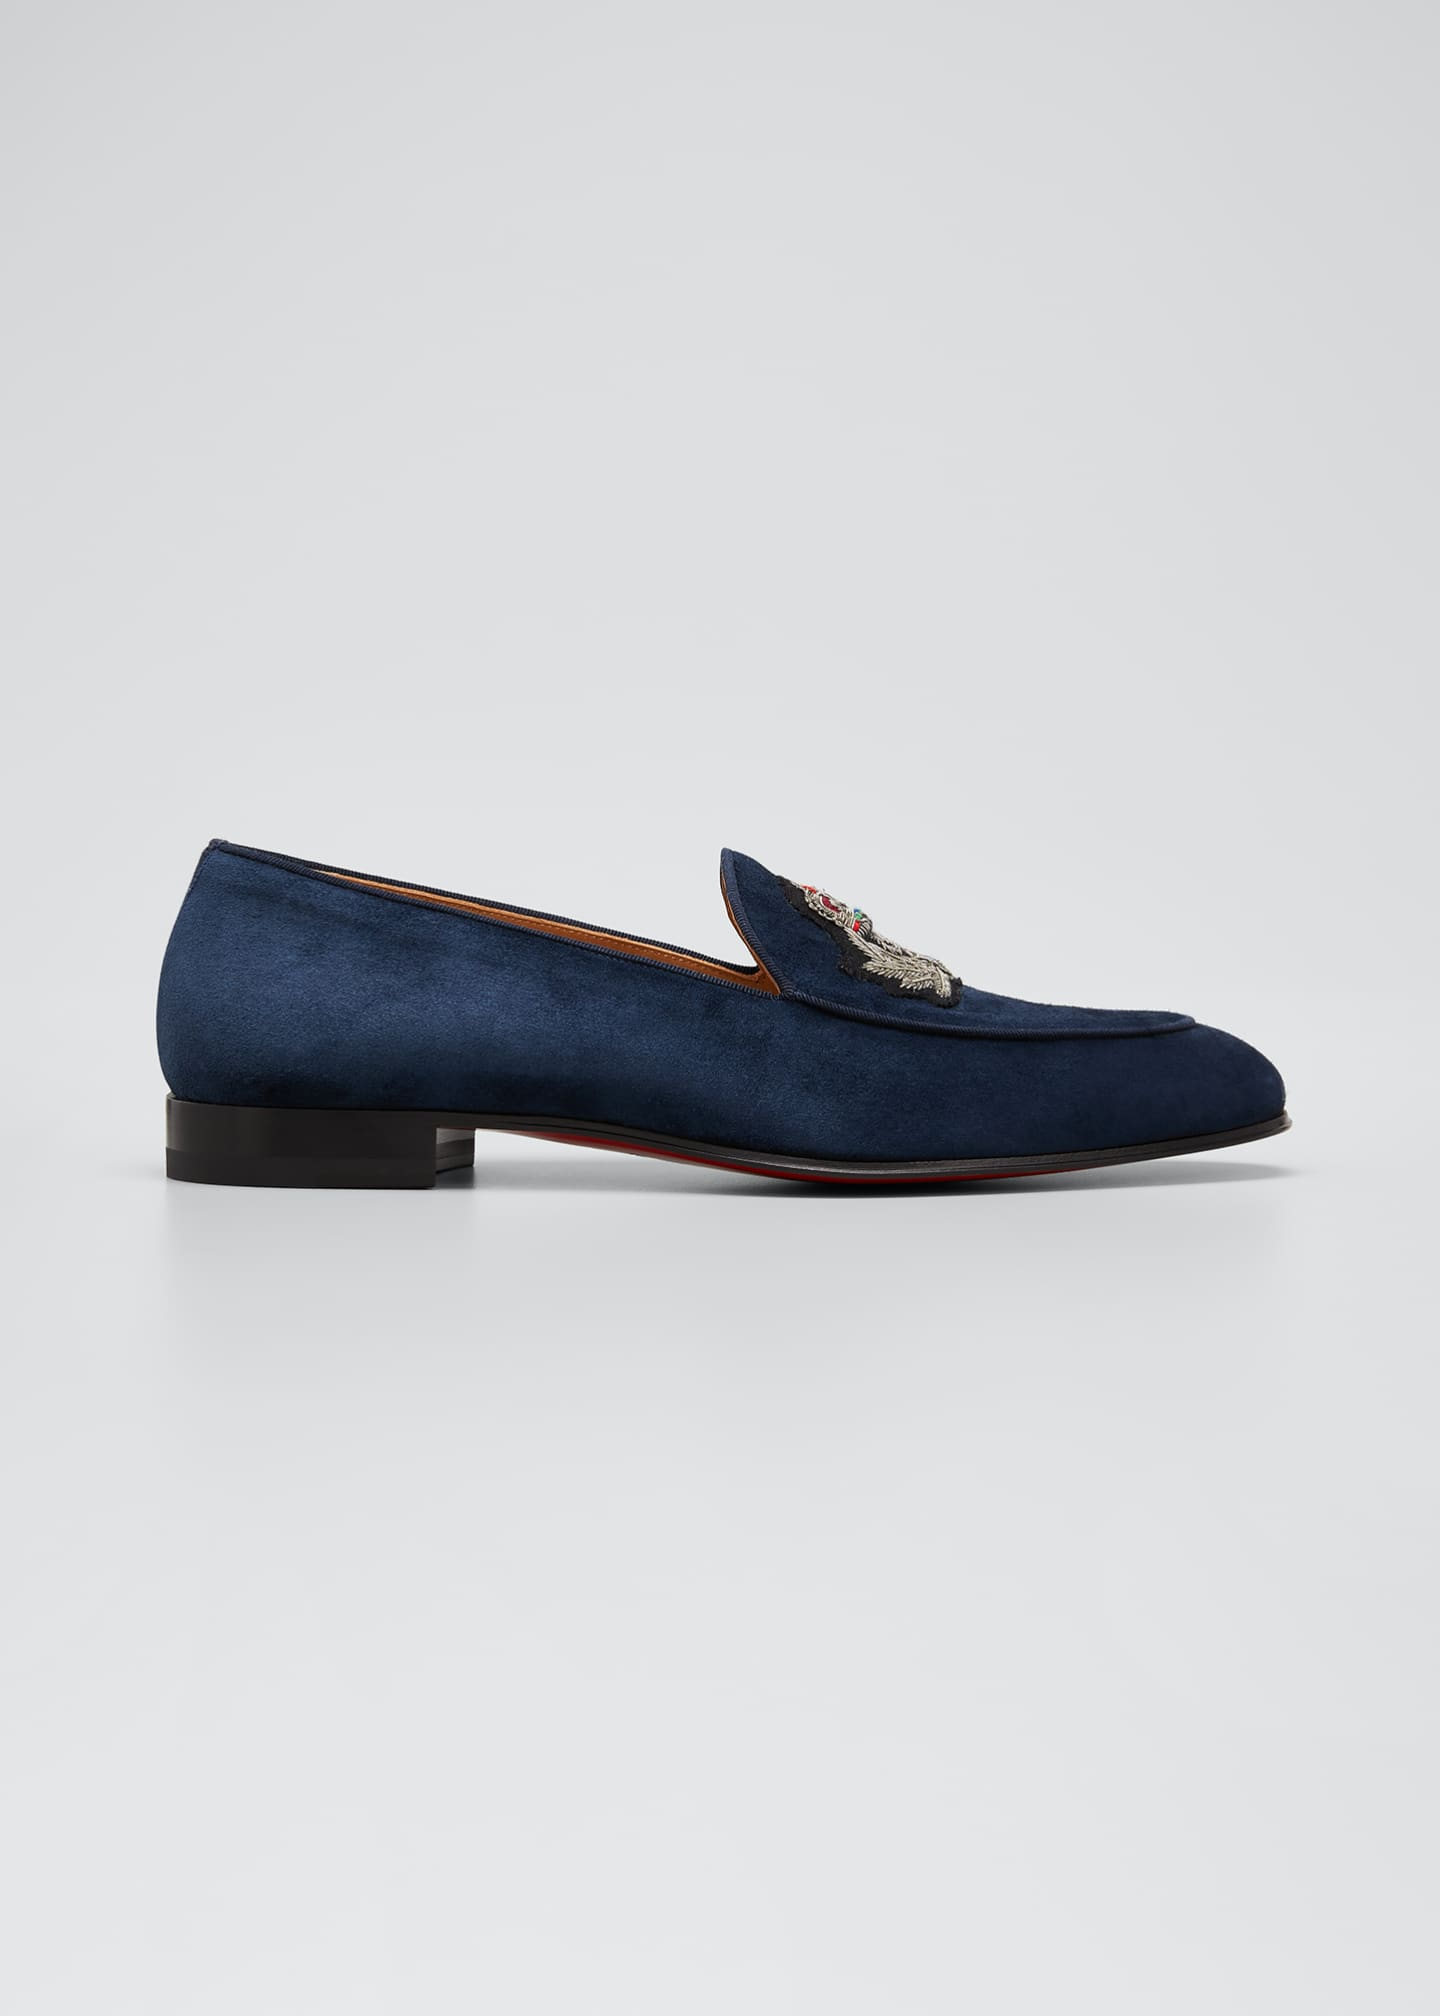 Image 1 of 4: Men's Crest on the Nile Suede Red Sole Loafers